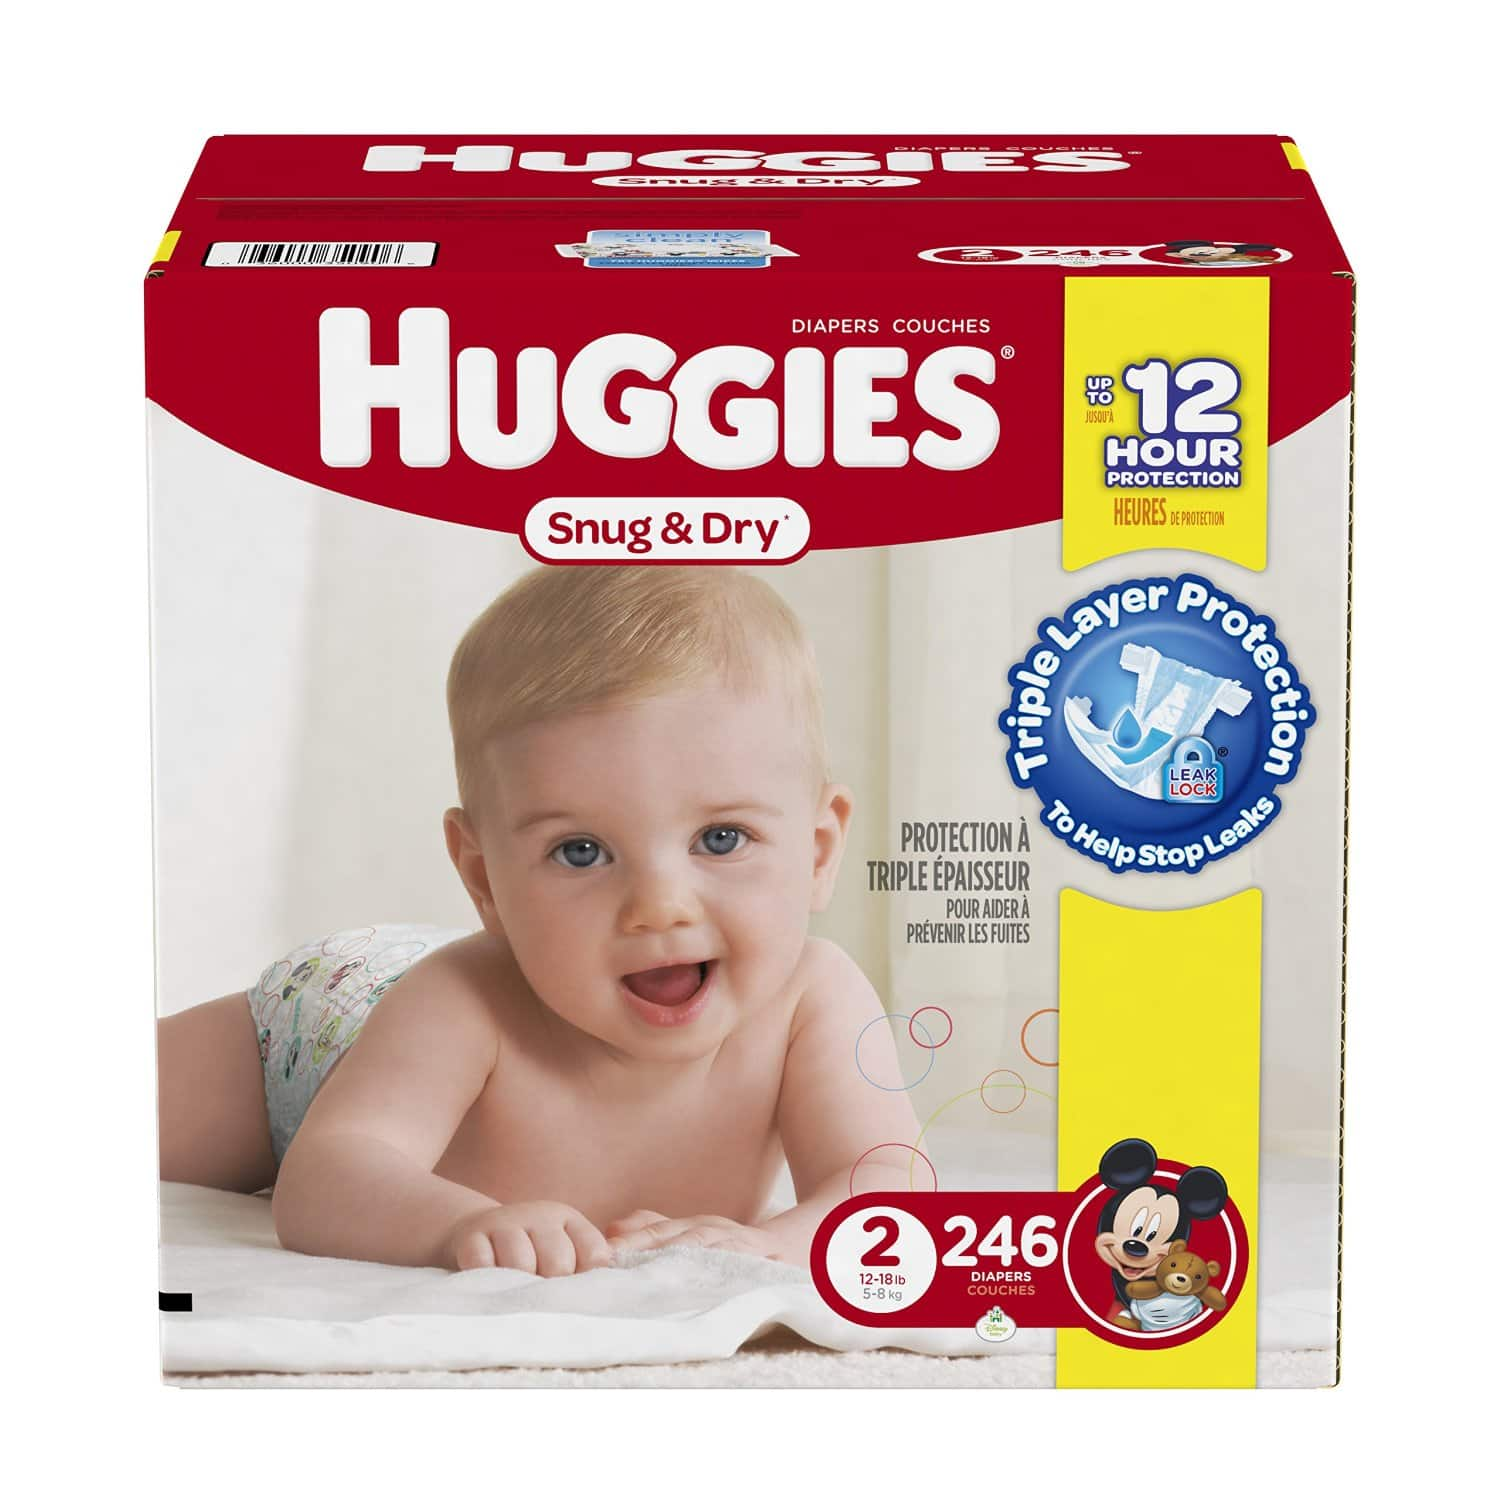 Amazon Family: Over 50% Off Huggies Diapers w/ New Clippable Coupons = As Low As 5¢ Per Diaper